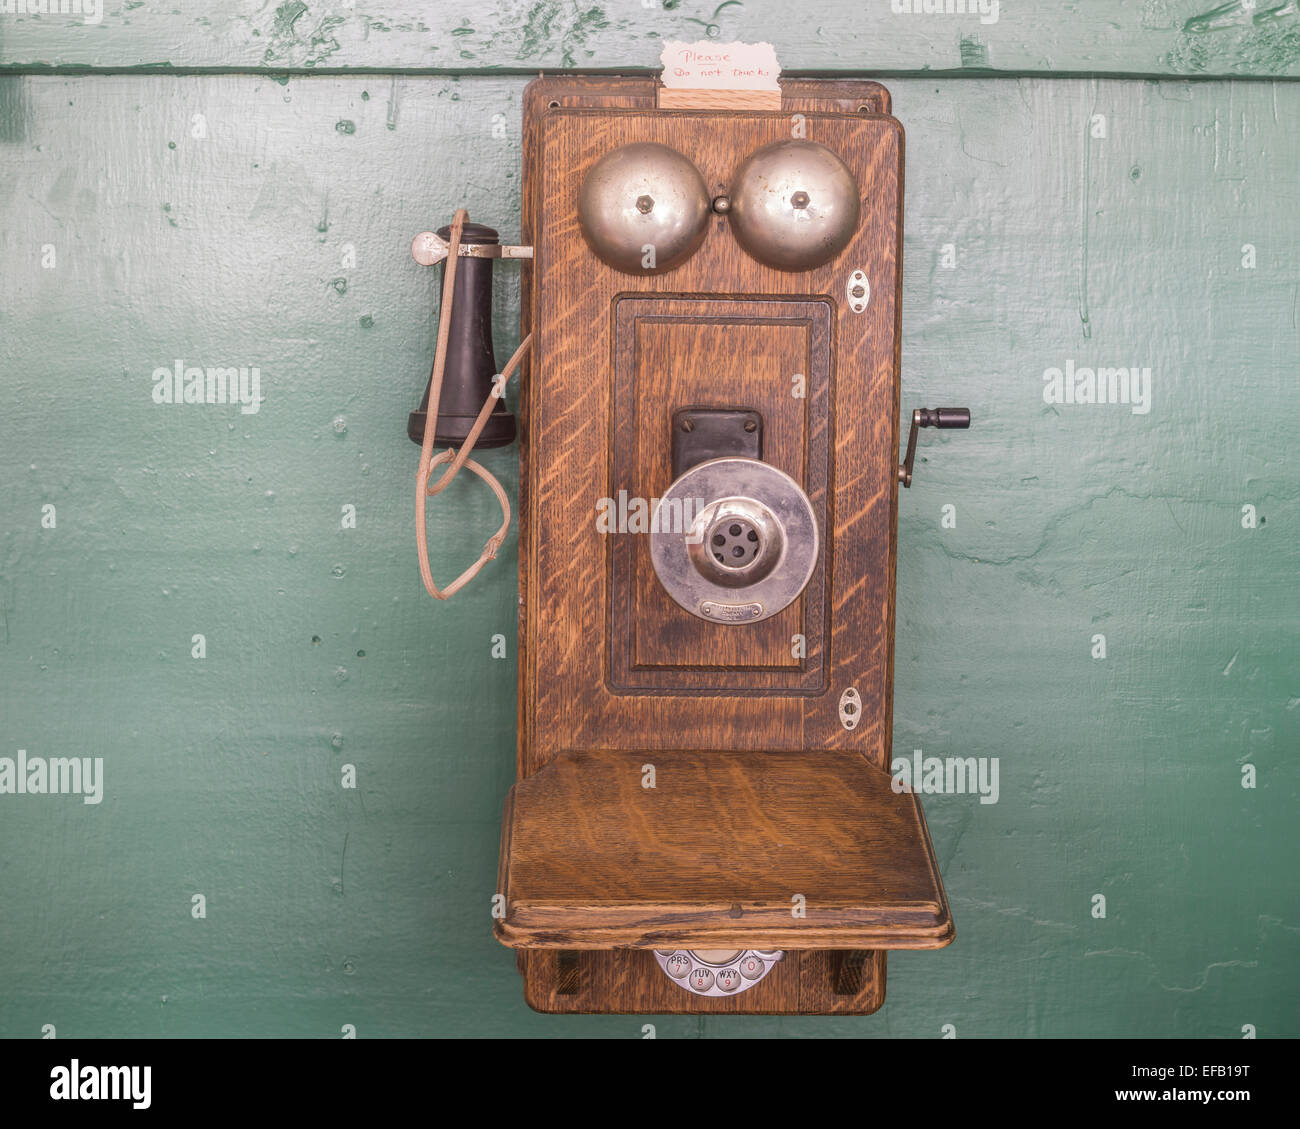 Old telephone with crank in the Museum City, South Pass City, Wyoming, United States Stock Photo